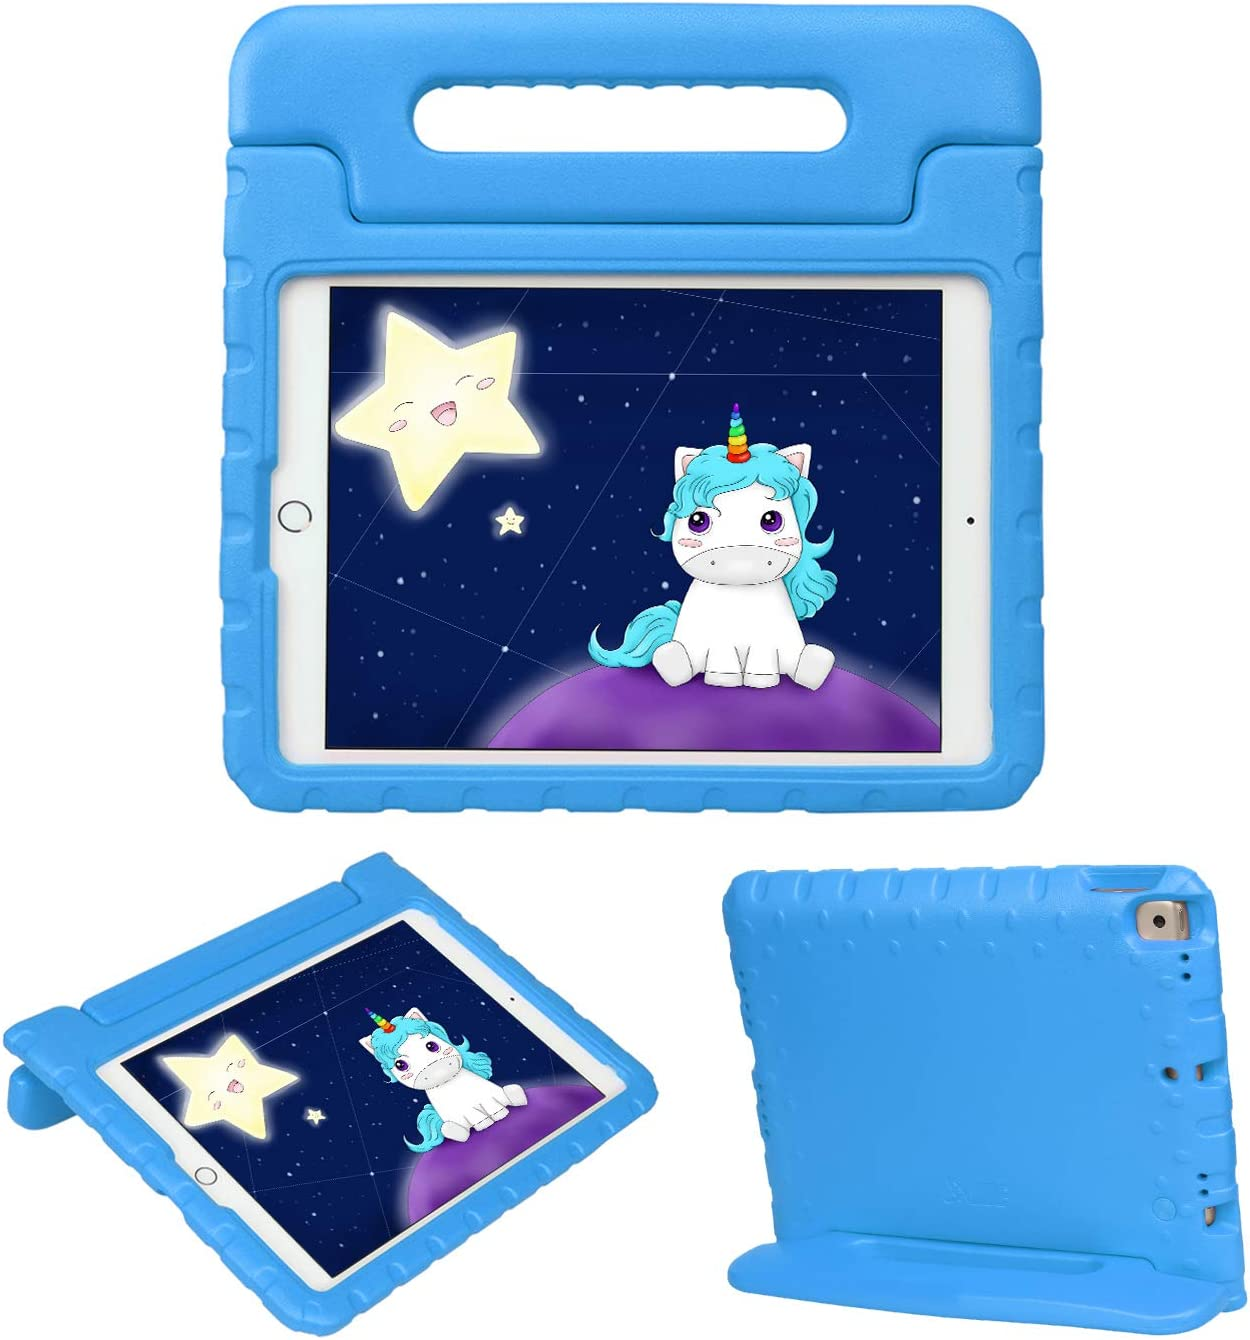 HDE iPad 8th Generation Case for Kids – Shock Proof iPad Cover 7th Generation 10.2 - iPad 10.2 Kids Case with Handle Stand for 7th/8th Generation Apple iPad - Blue